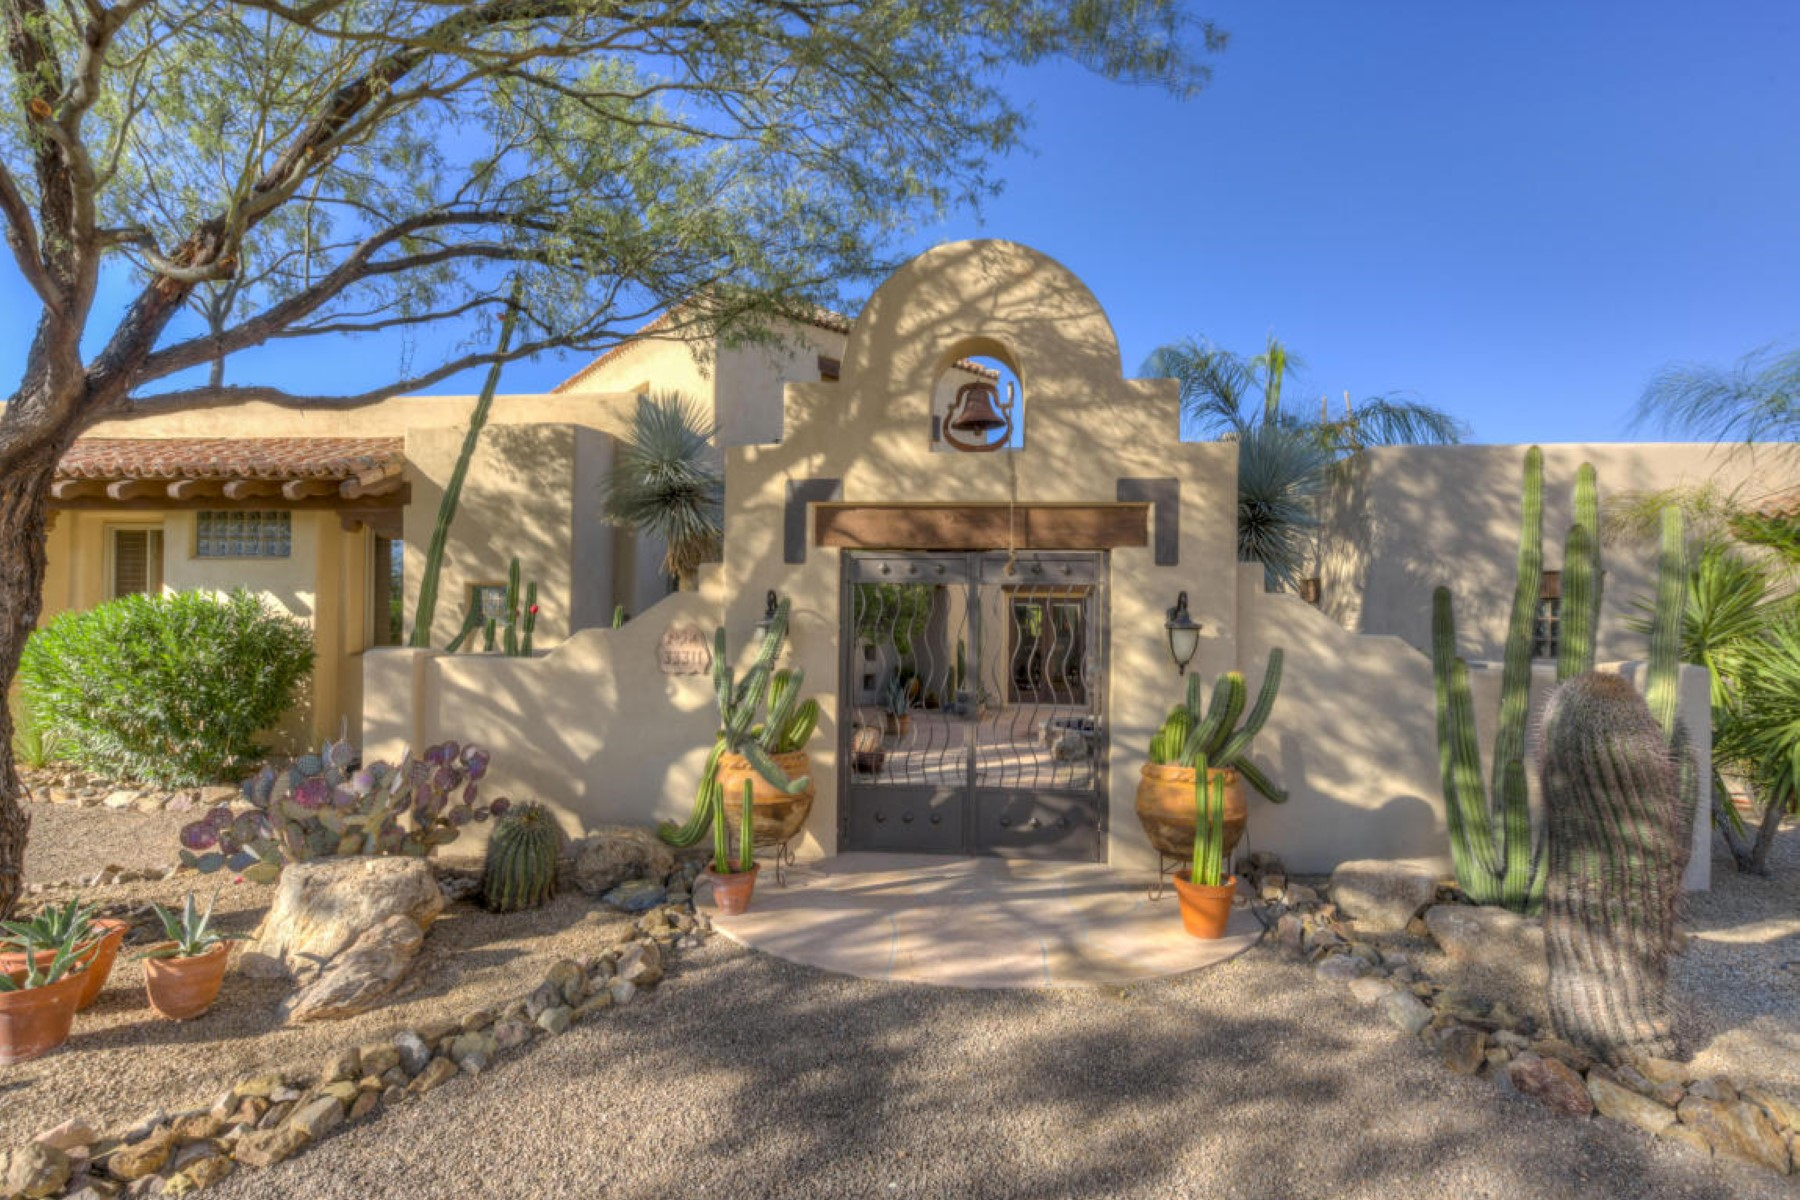 Single Family Home for Sale at Hacienda style home in Cave Creek 33311 N 62nd St Cave Creek, Arizona, 85331 United States